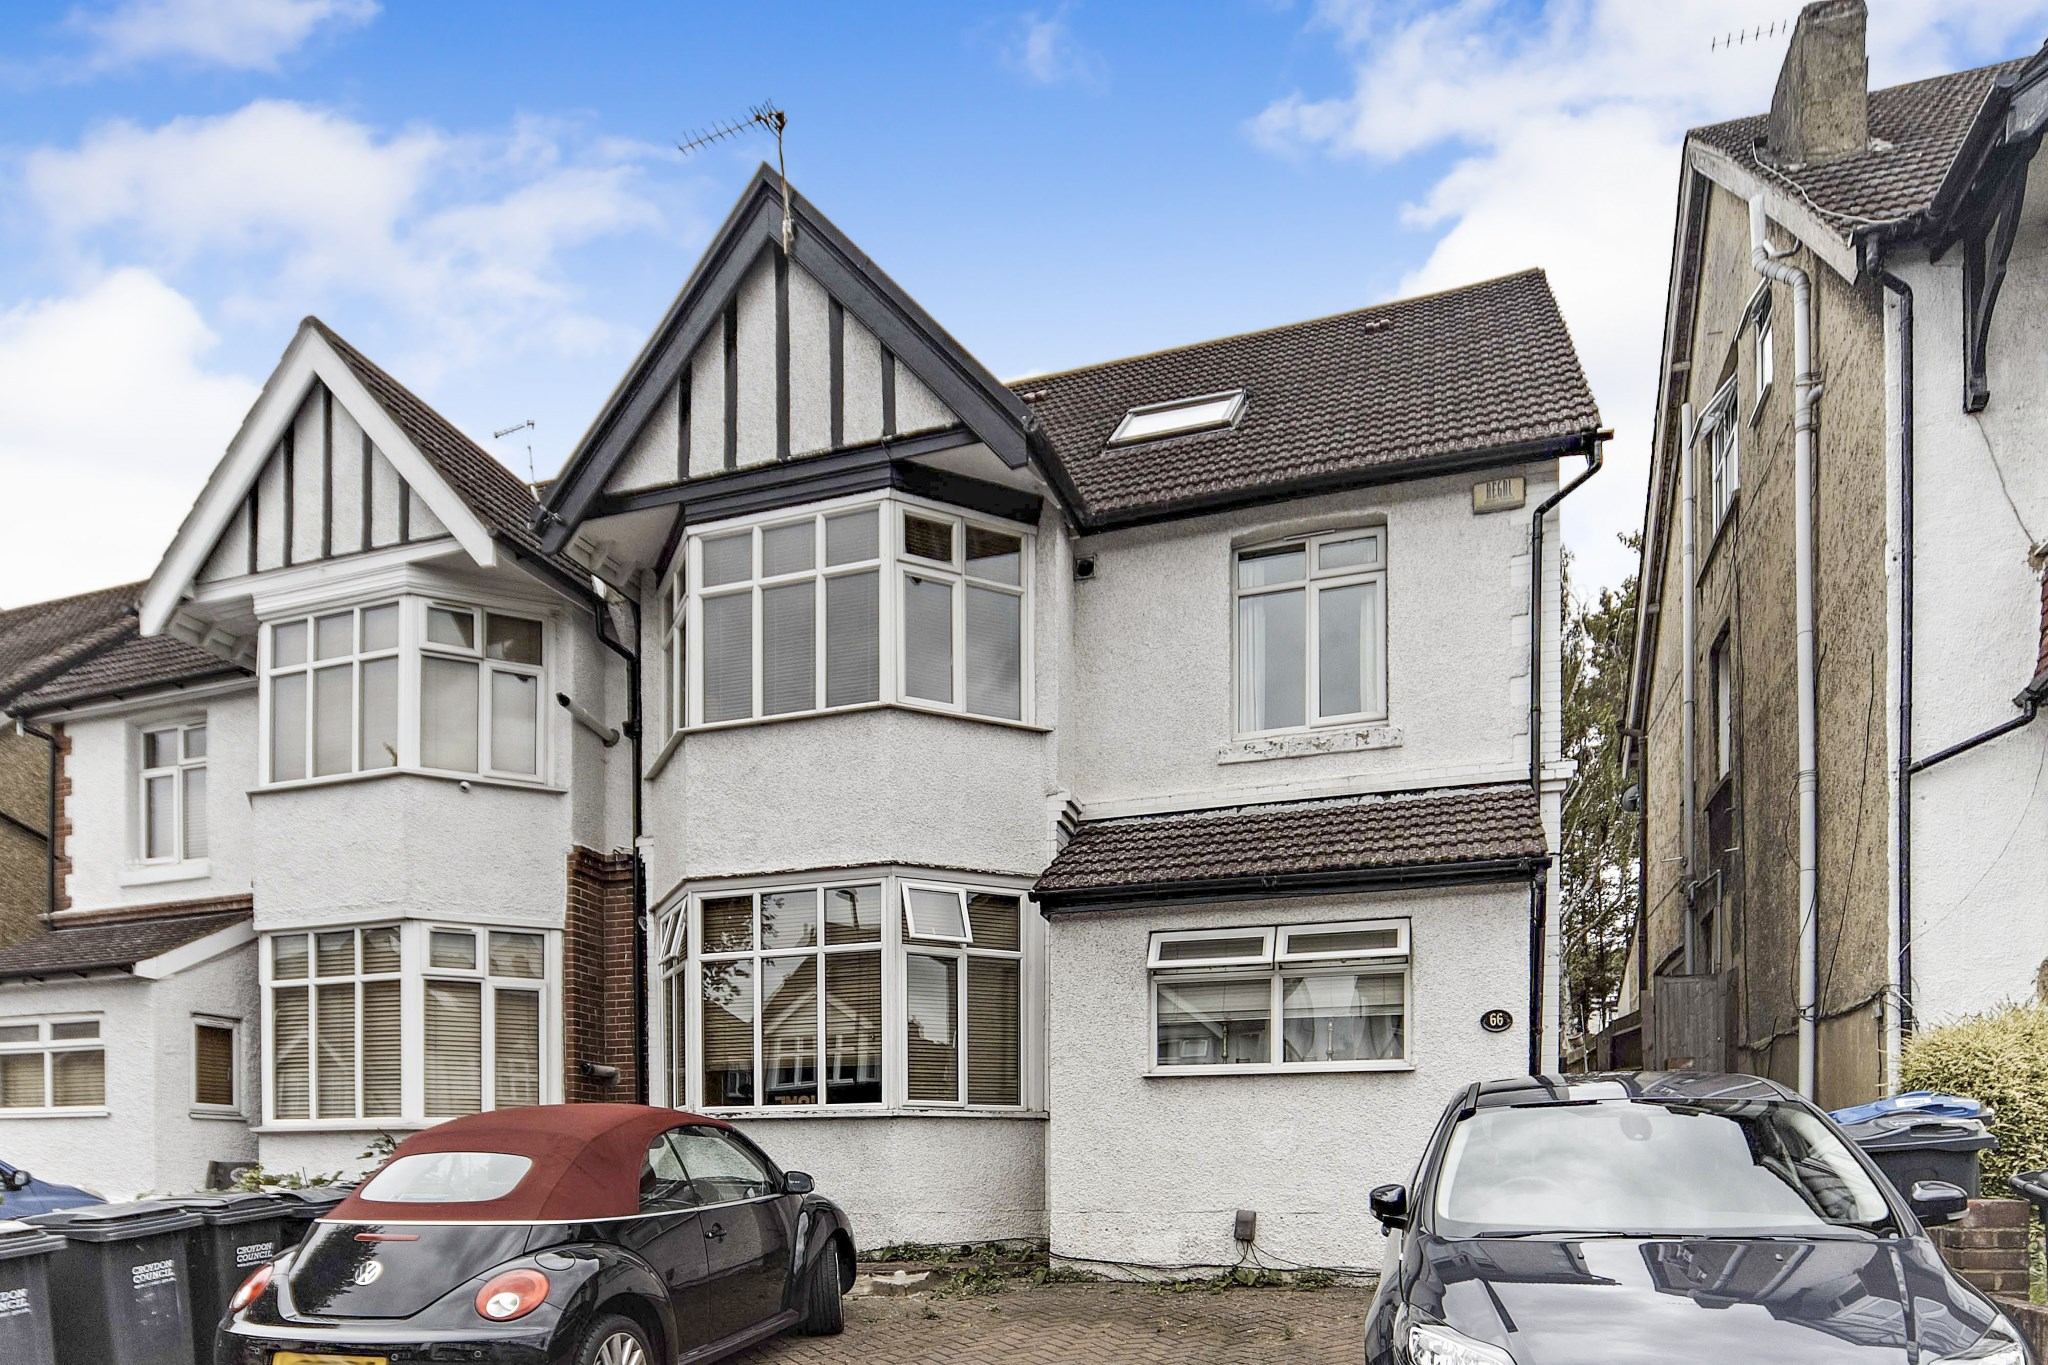 Mayfield Road, South Croydon, CR2